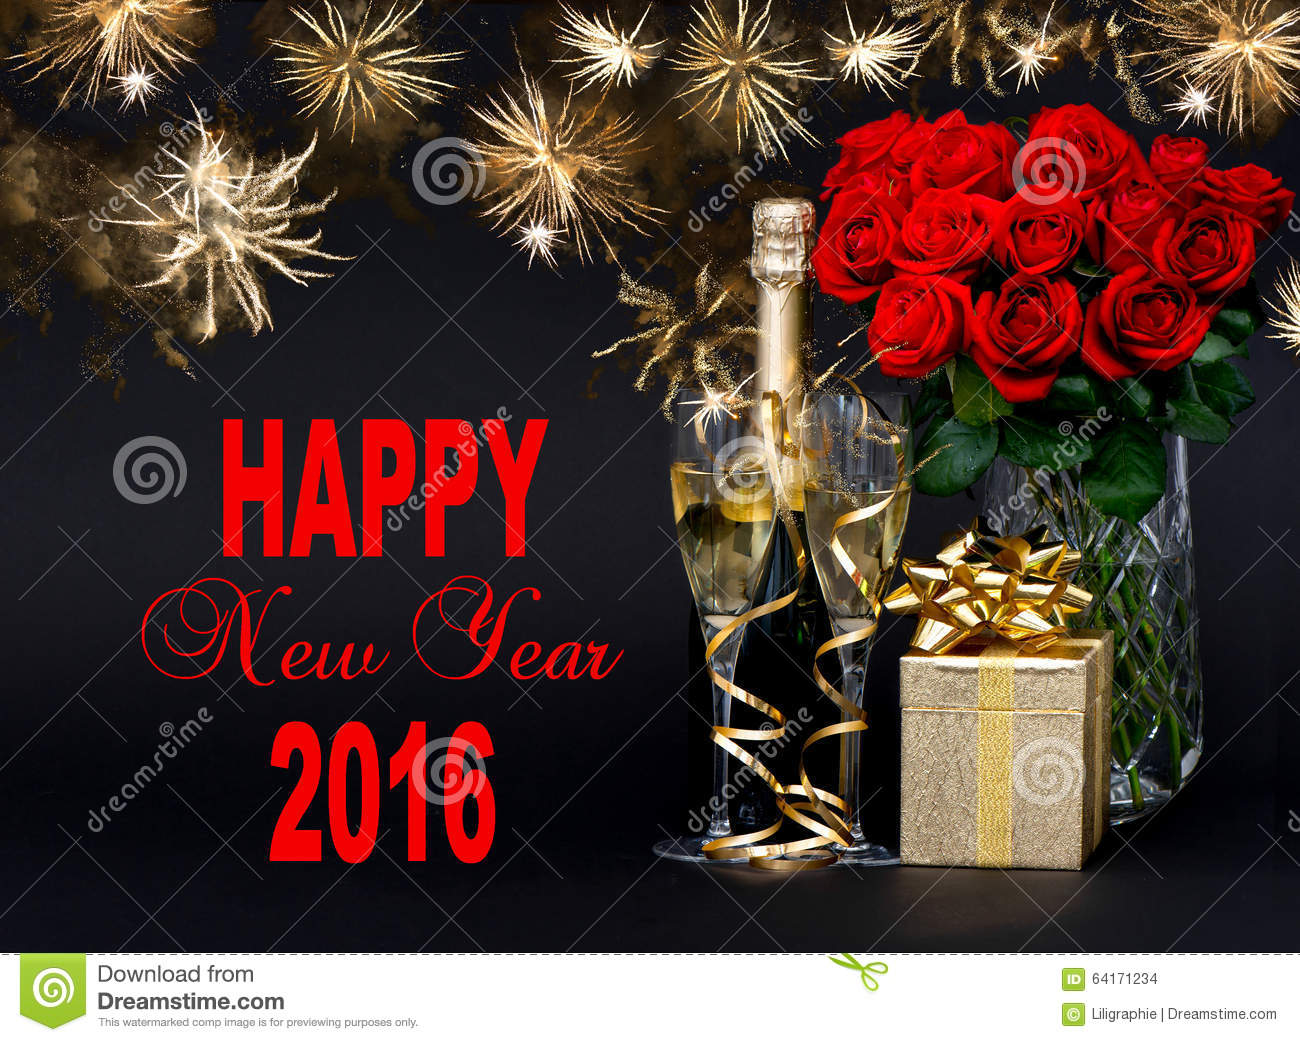 Champagne Gift Flowers And Golden Fireworks Happy New Year 20